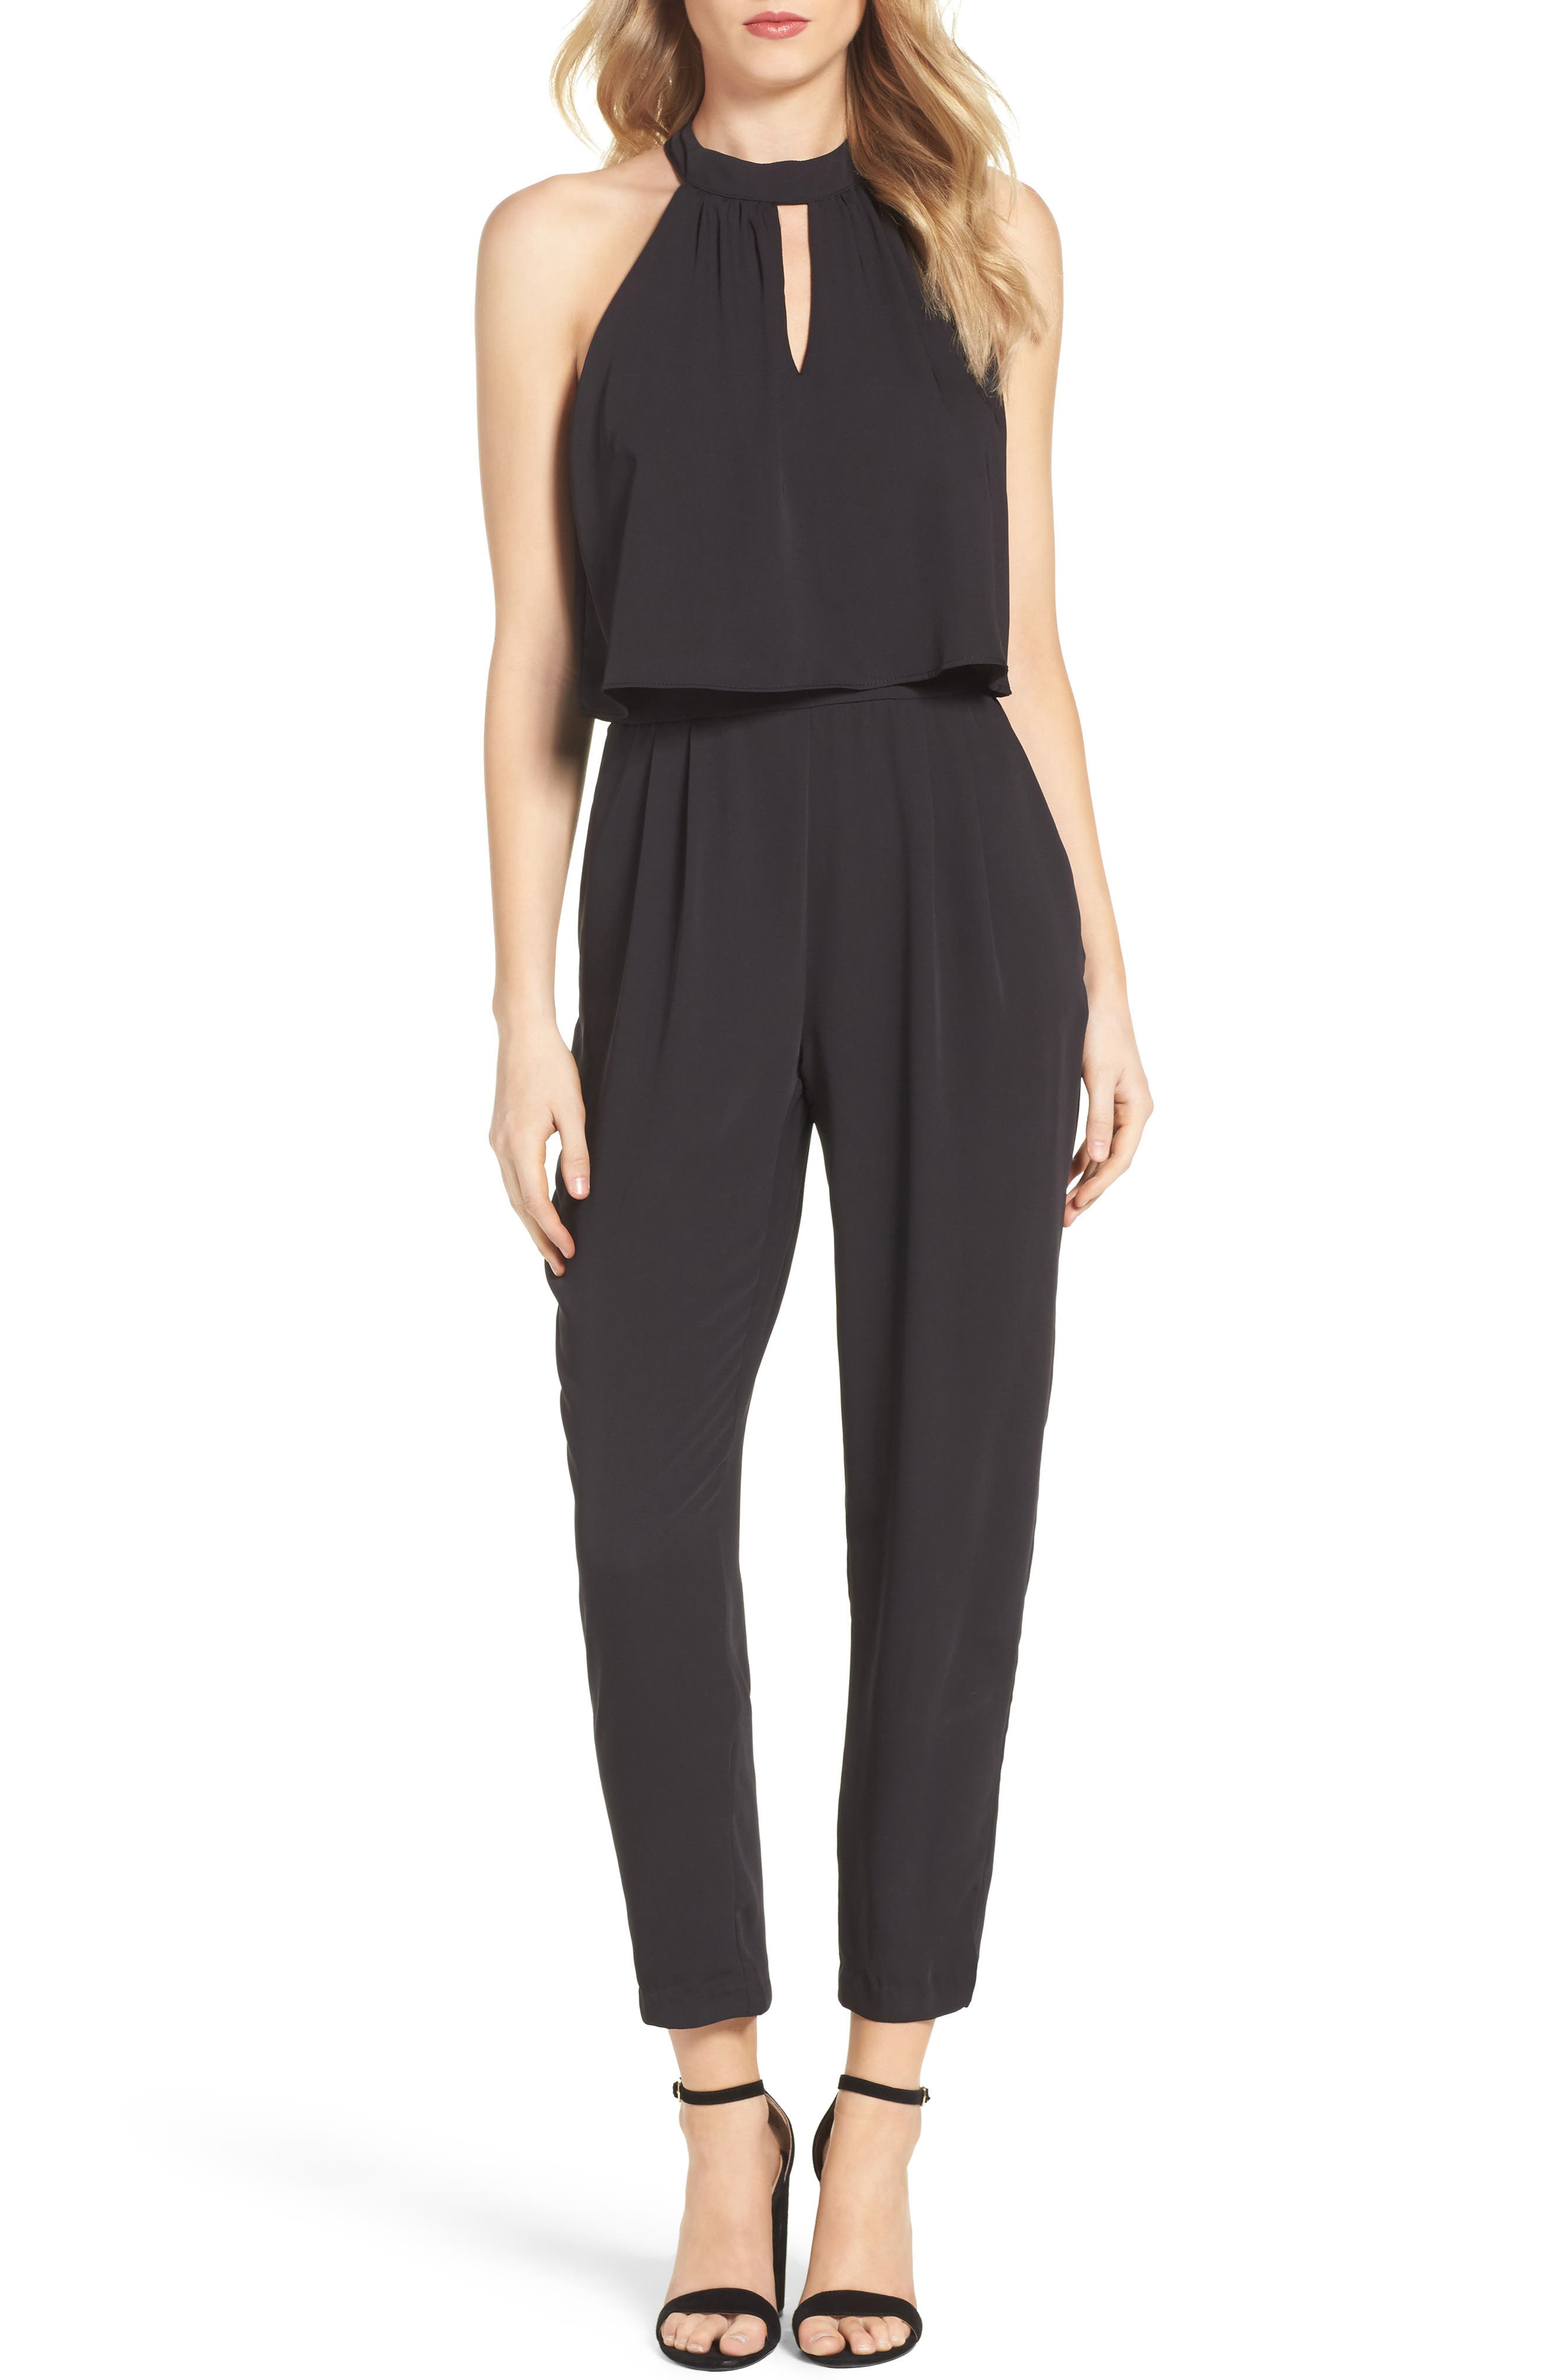 Nayden Popover Jumpsuit,                         Main,                         color, Black